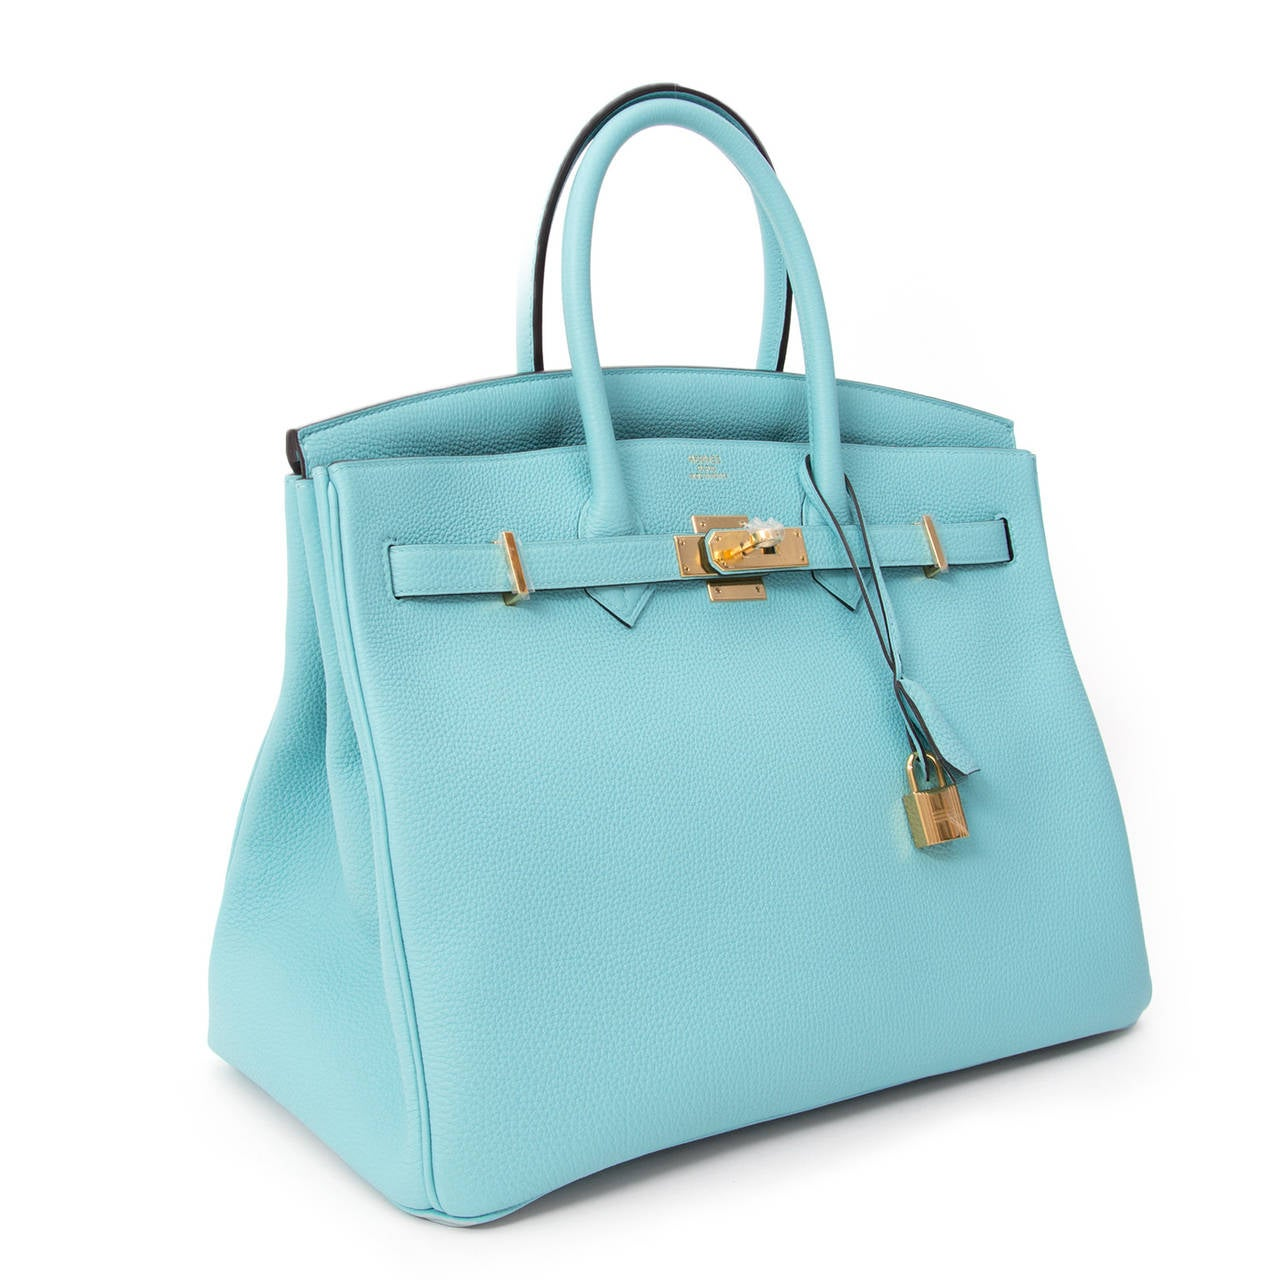 7f664d28eac2 BRAND NEW Hermès Birkin Togo Bleu Atoll GHW 35 In New Condition For Sale In  Antwerp